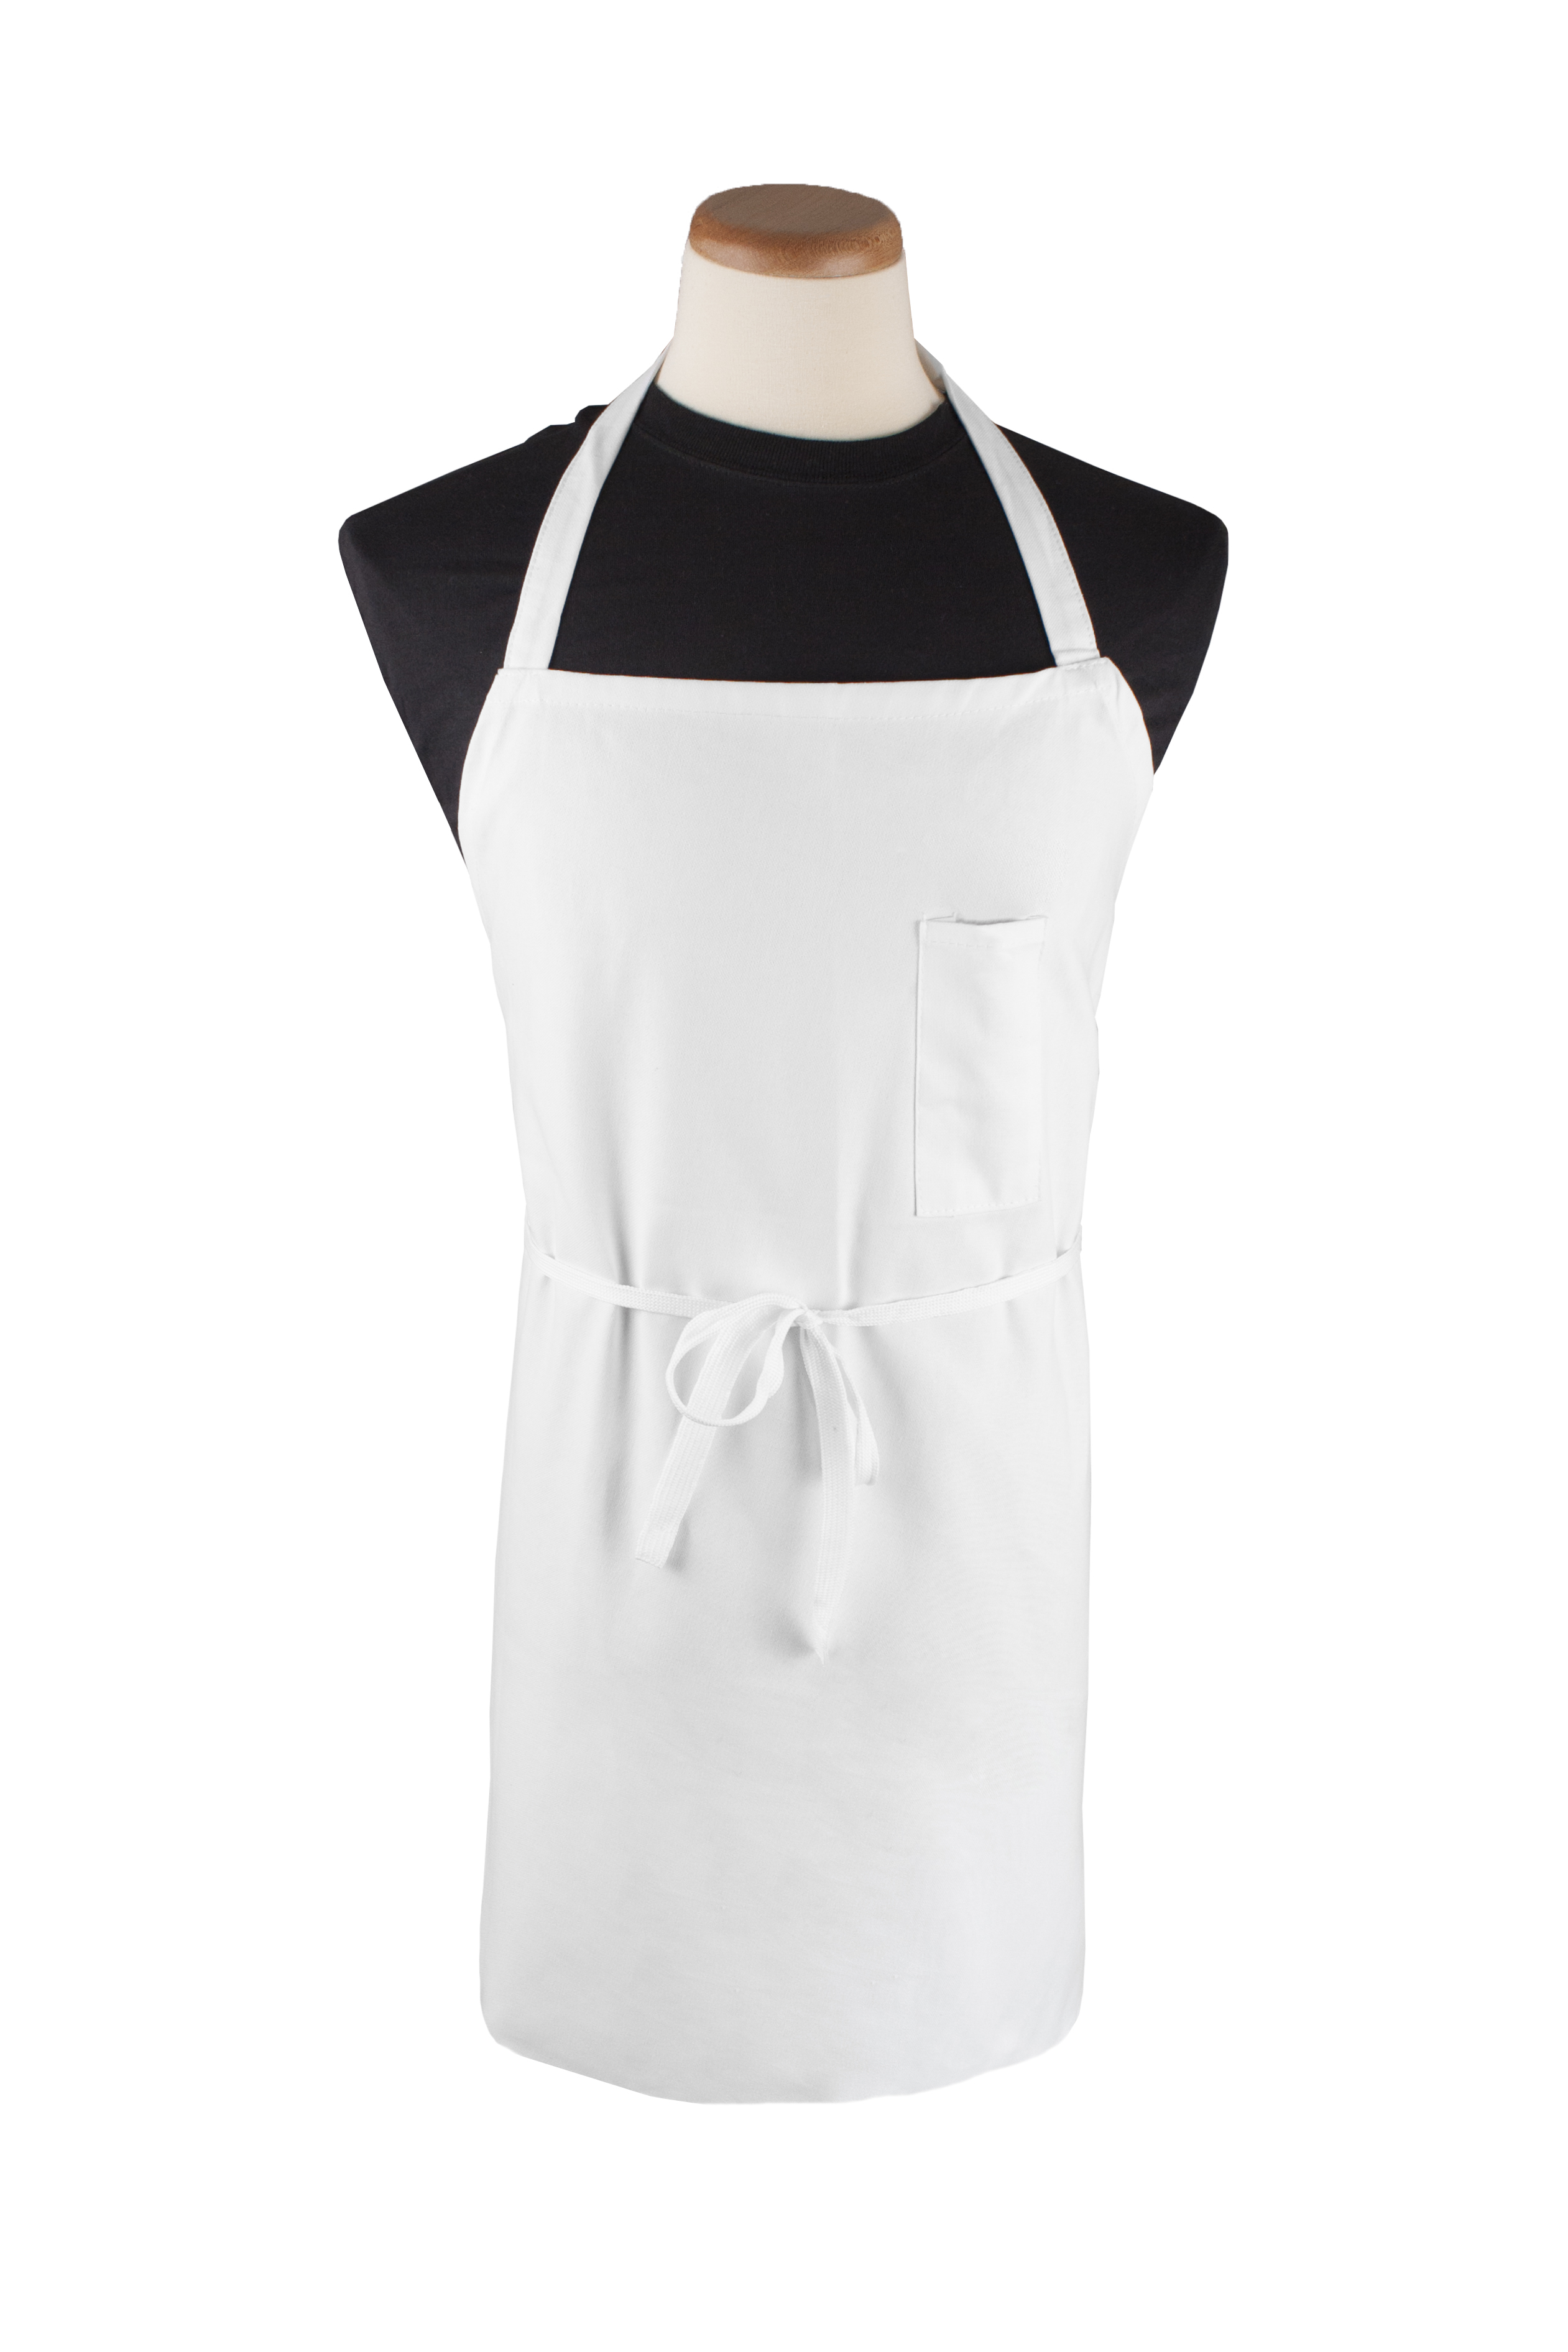 "Bib Apron w/Pen Pocket, 32"" x 32""L"